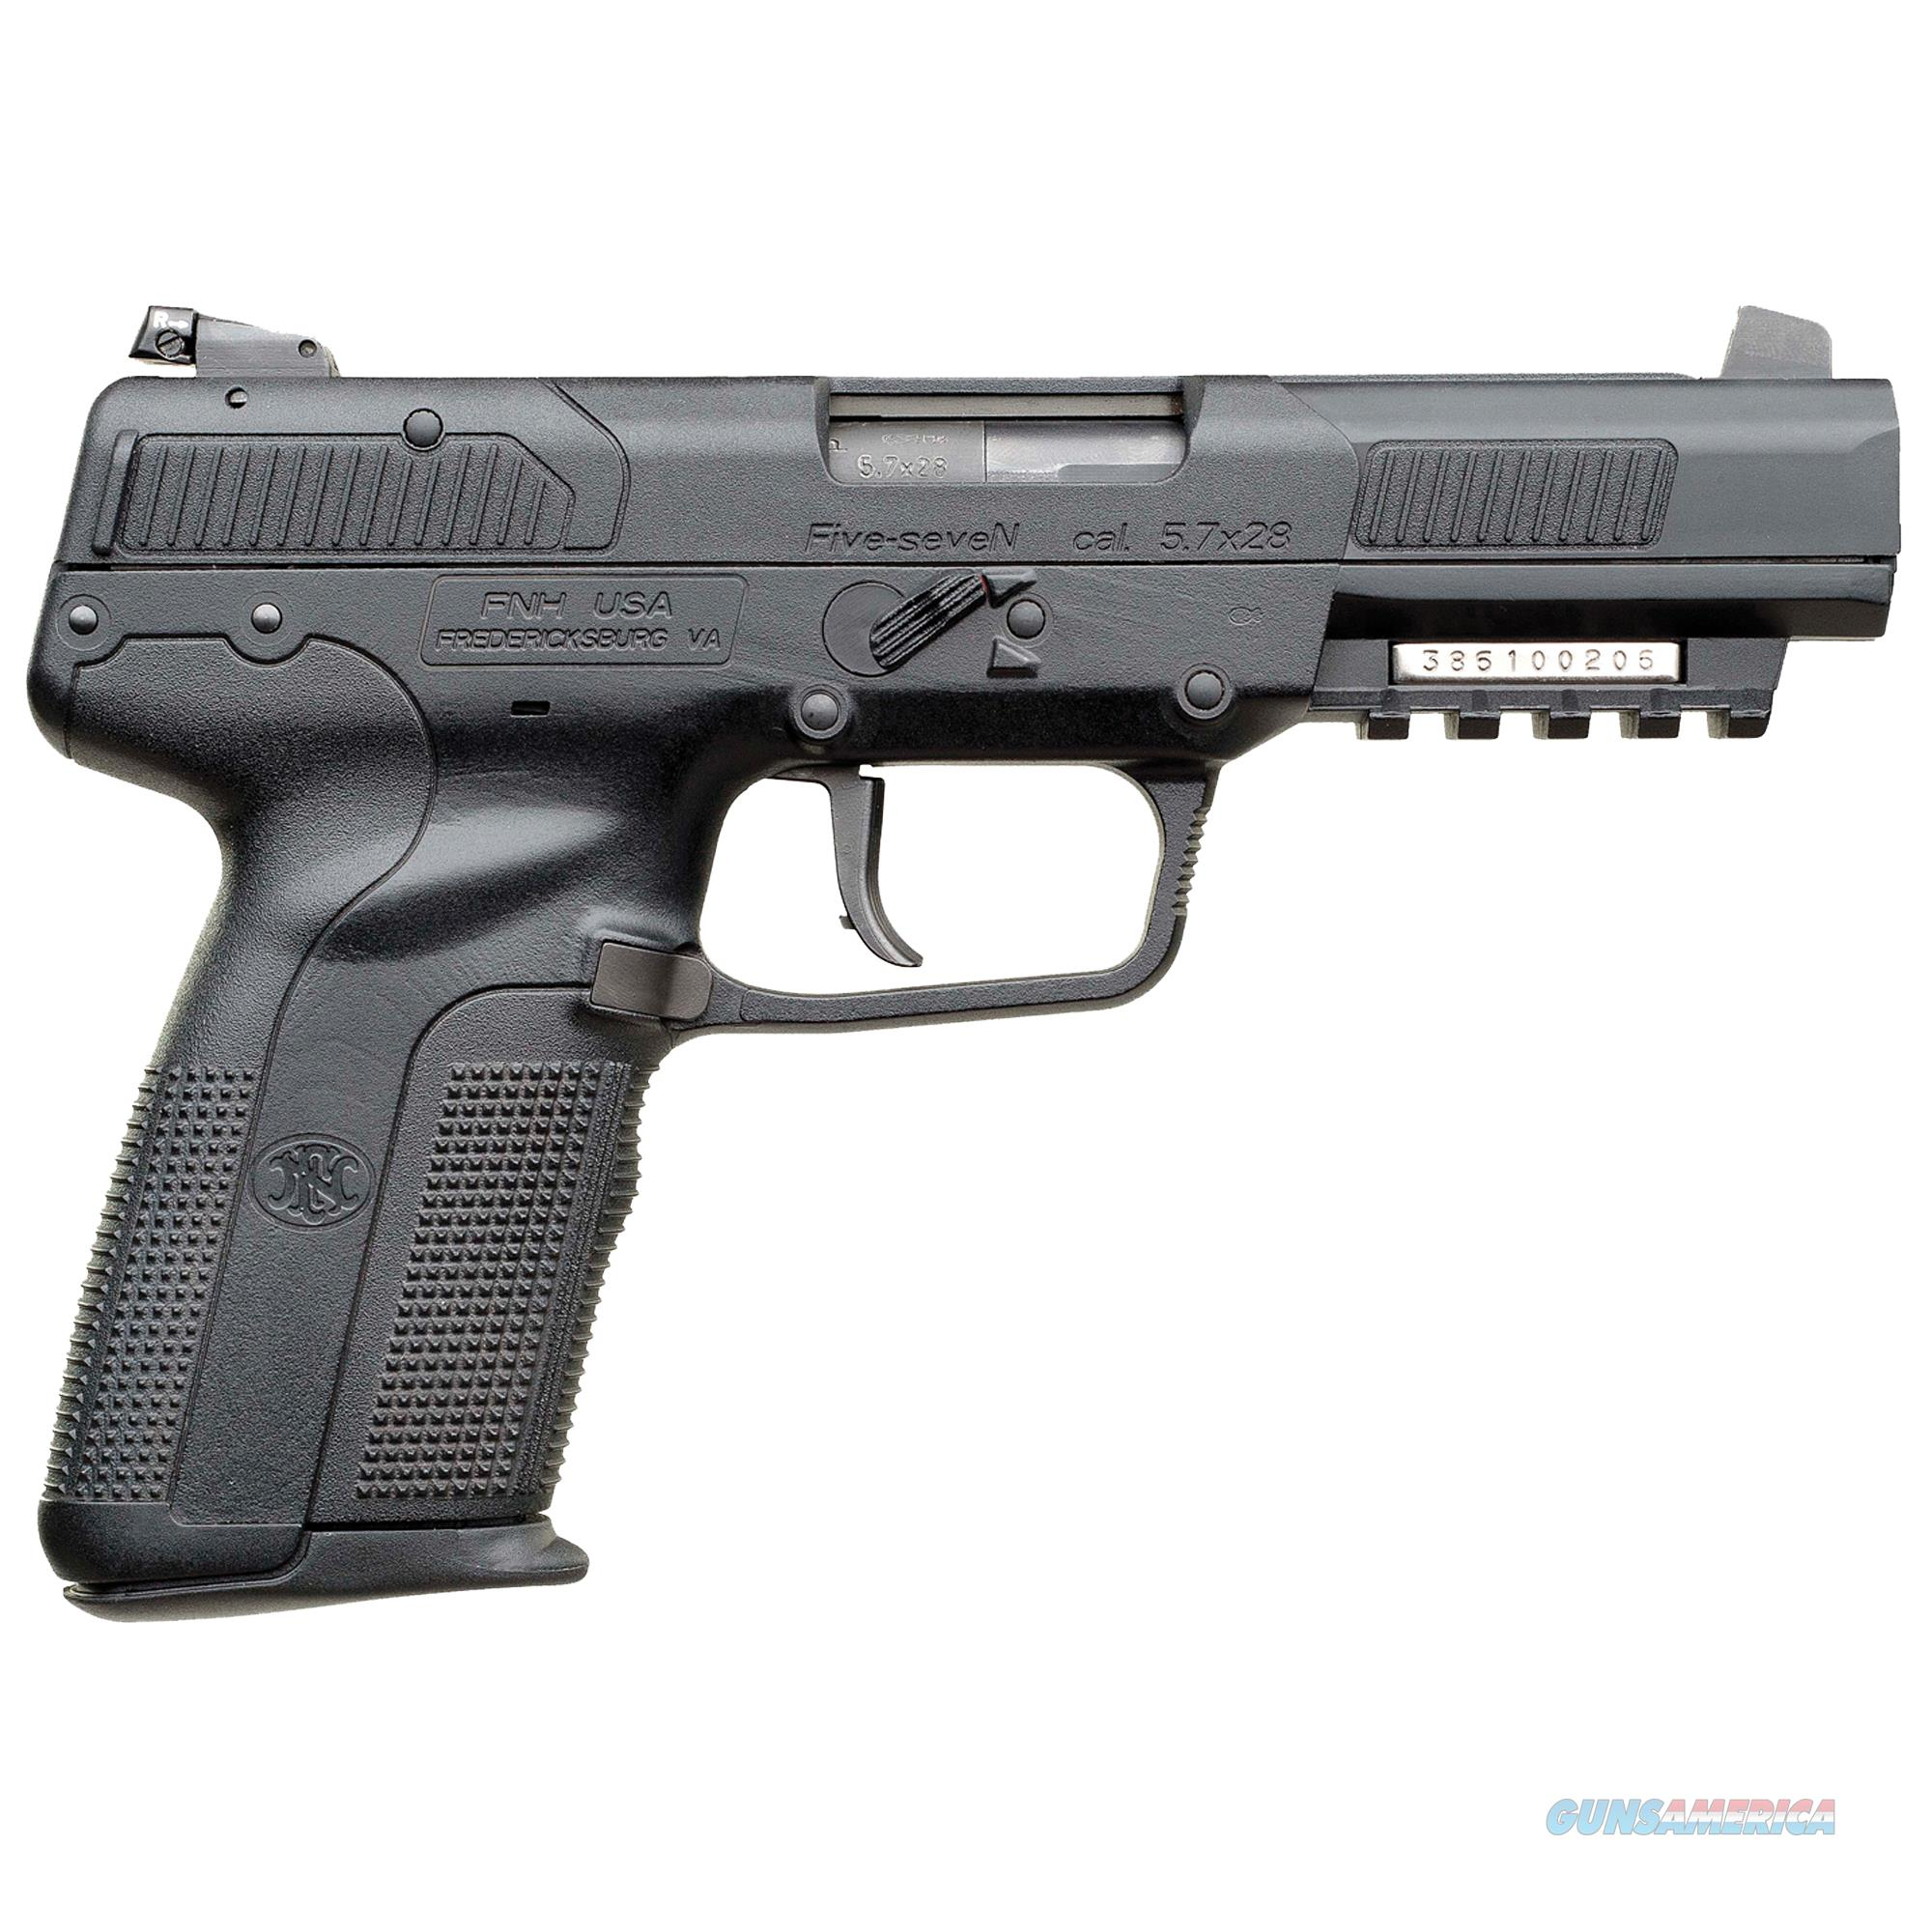 """FN Five-seveN 5.7mmX28mm 4.8"""" 20+1 - New in Case!  Guns > Pistols > FNH - Fabrique Nationale (FN) Pistols > FiveSeven"""